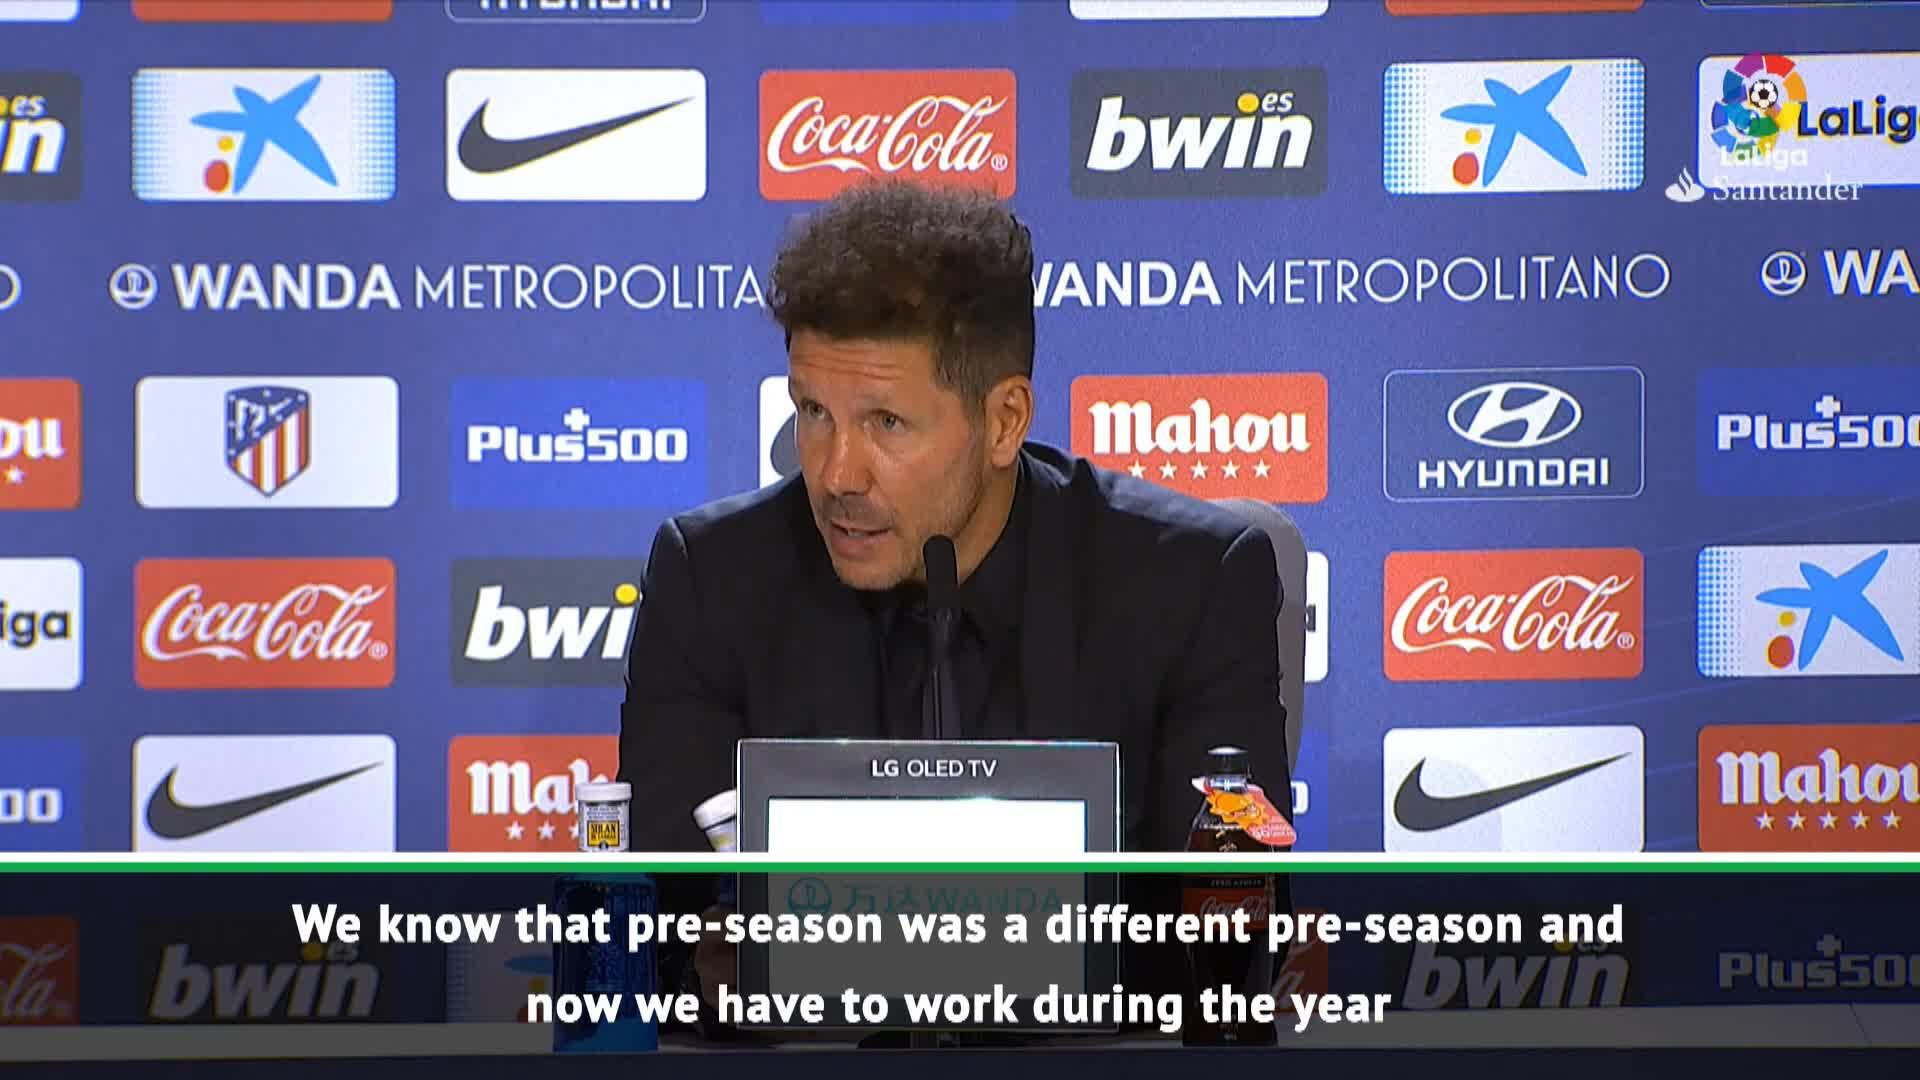 Atletico still recovering from limited pre-season - Simeone - 24